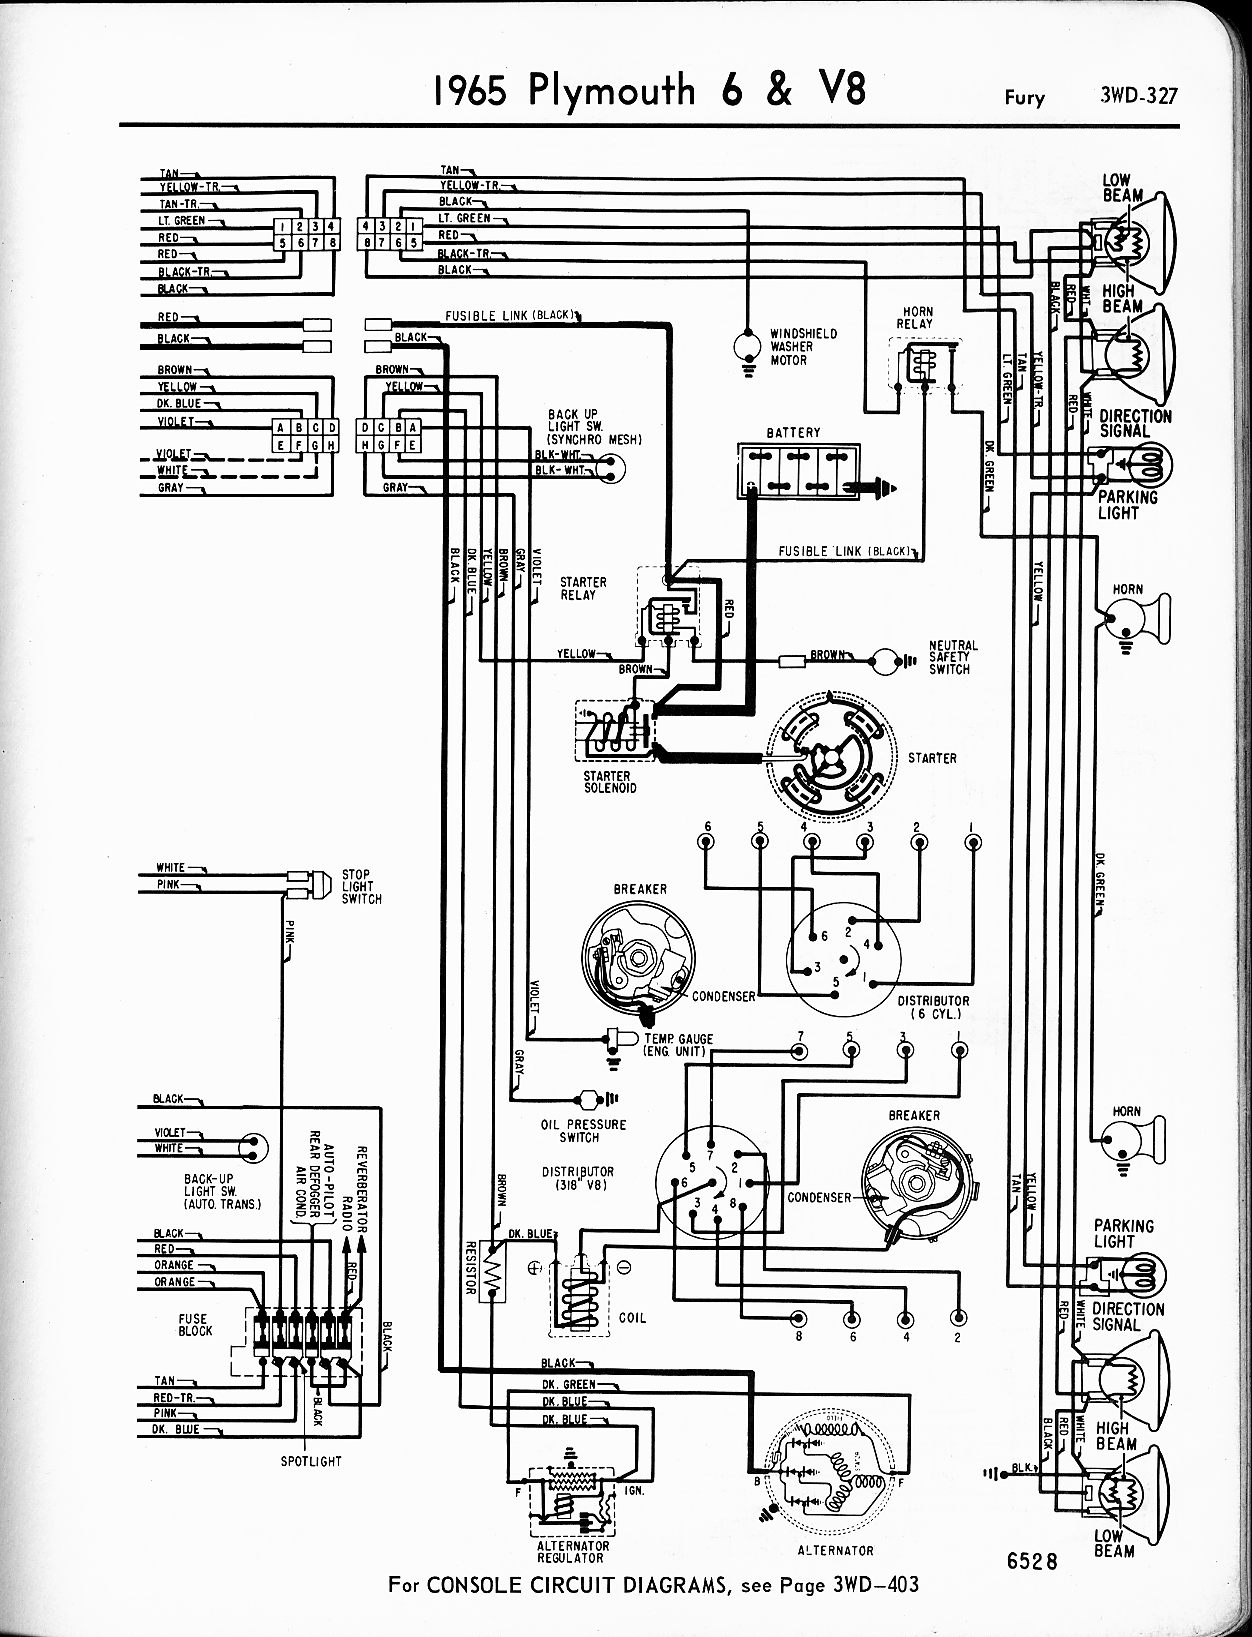 fax wiring diagram wiring library Ford Towing Wiring Diagram 68 satellite wiring diagram wiring diagram schematics 4 way switch wiring diagram 68 valiant wiring